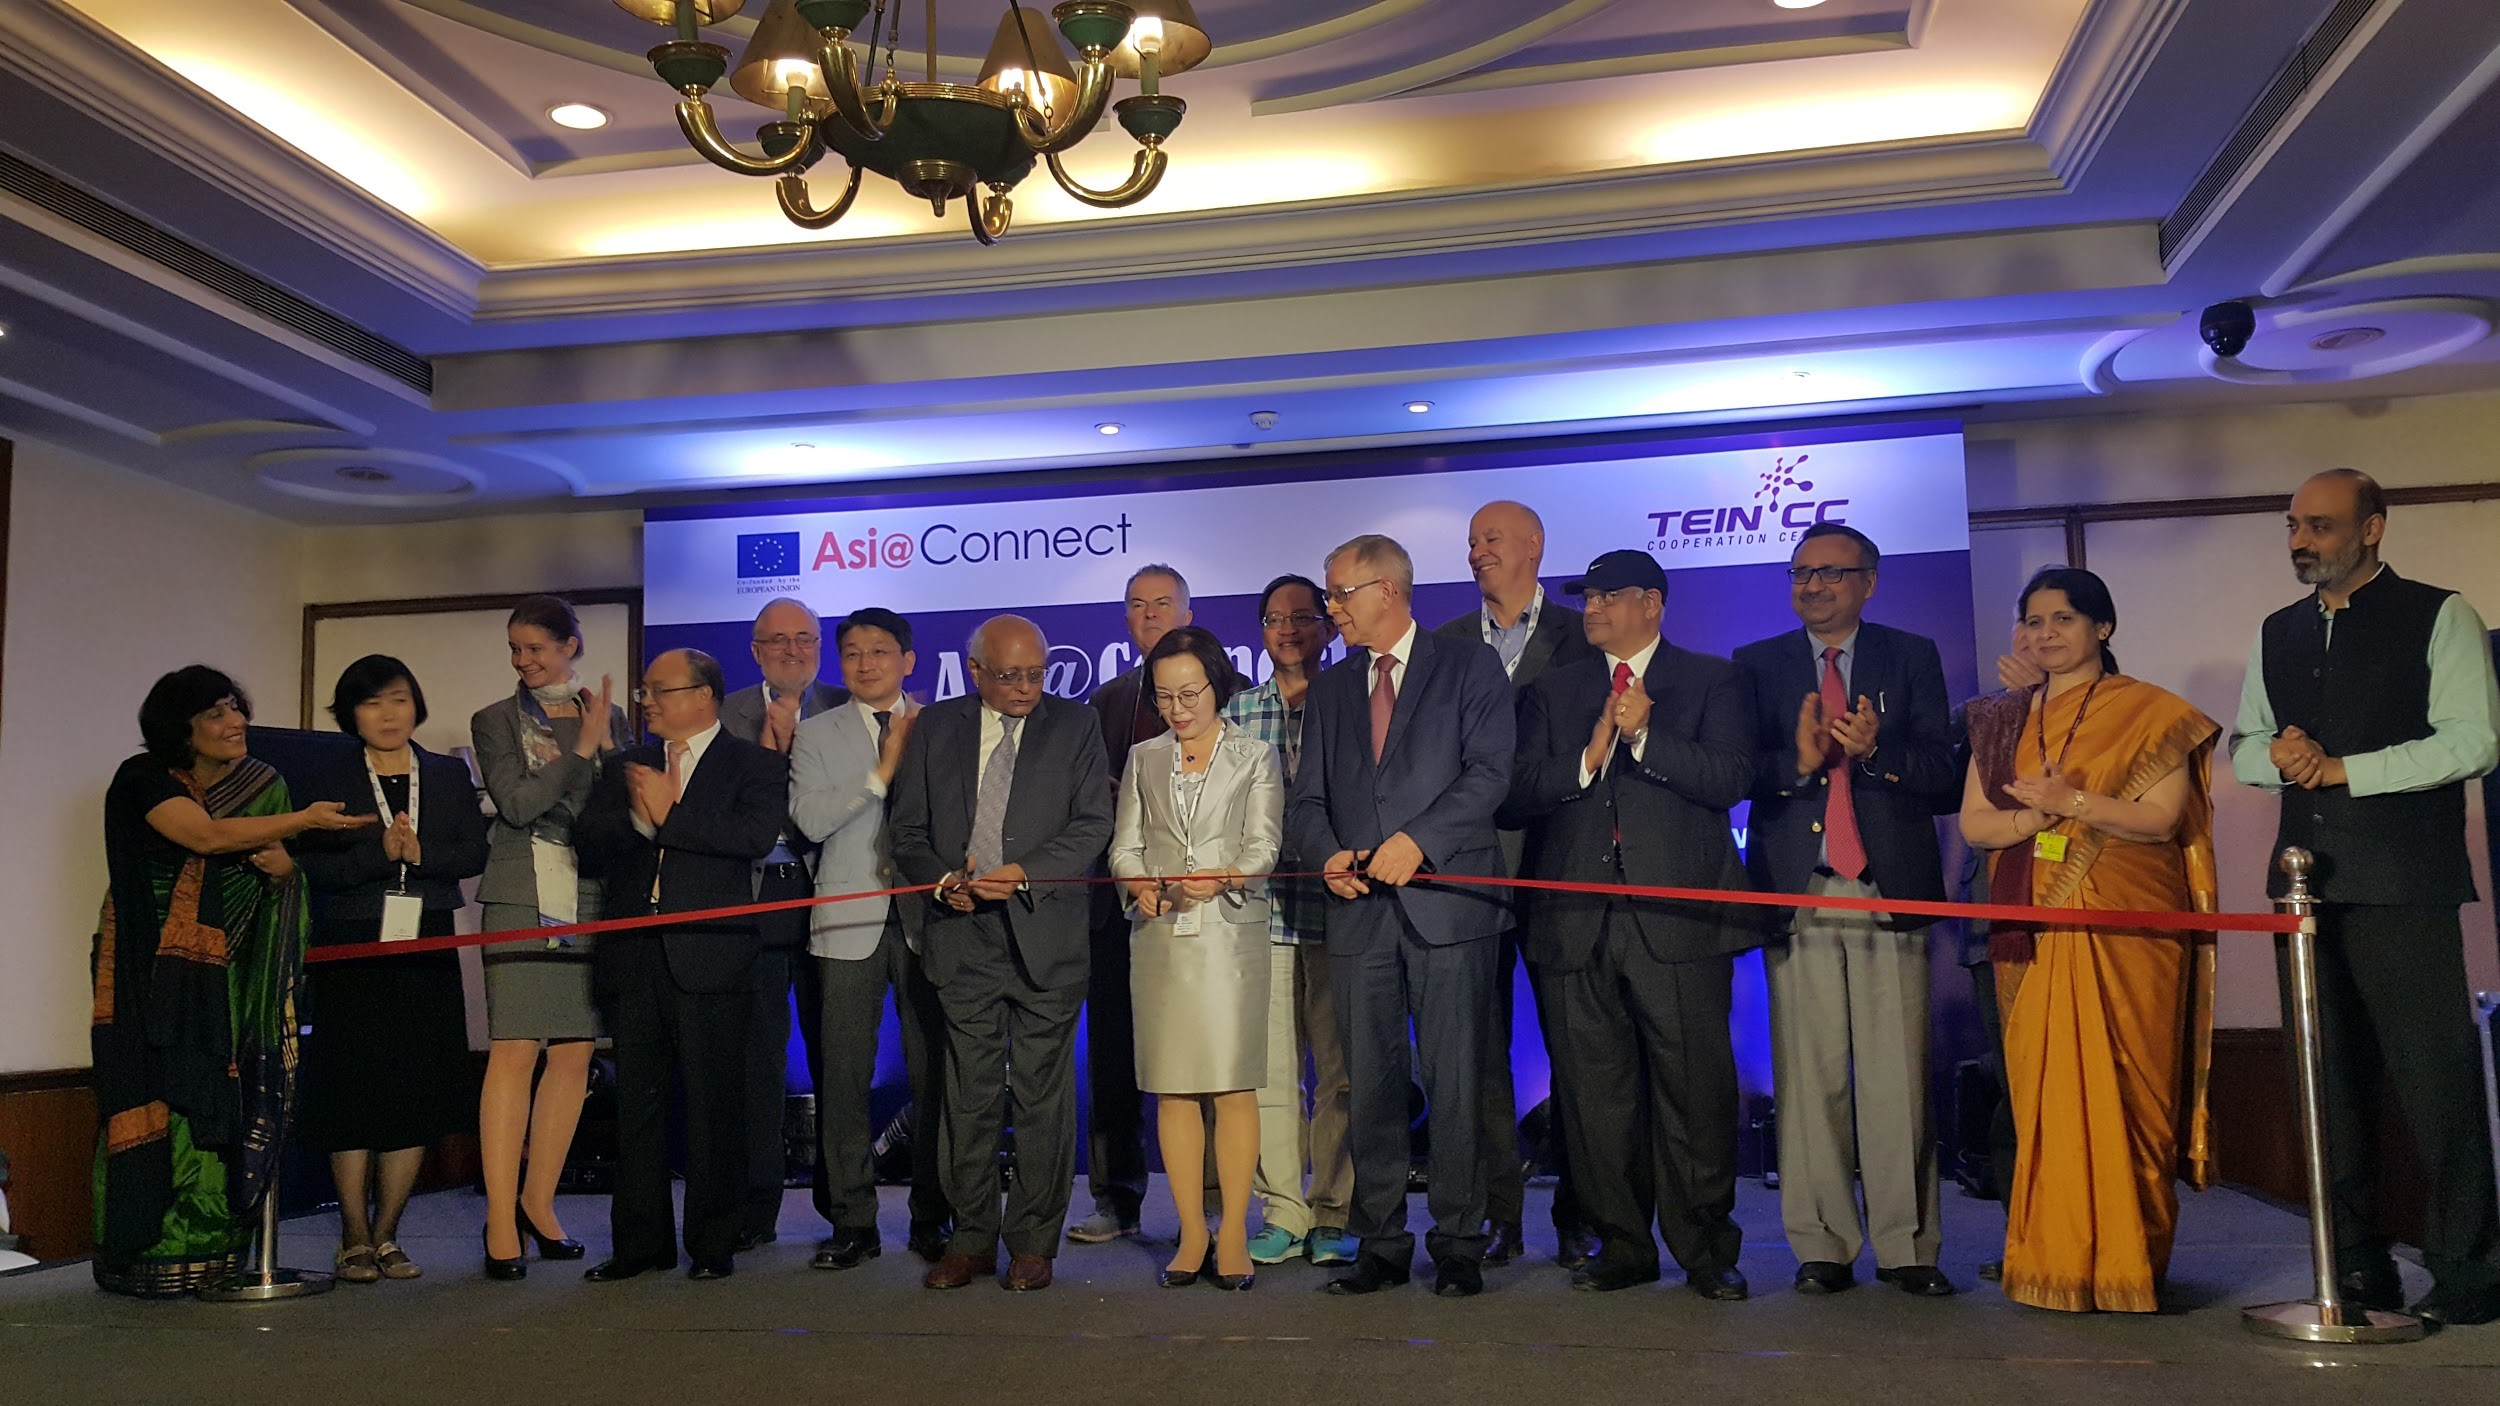 New Delhi, India: Asi@Connect project launched